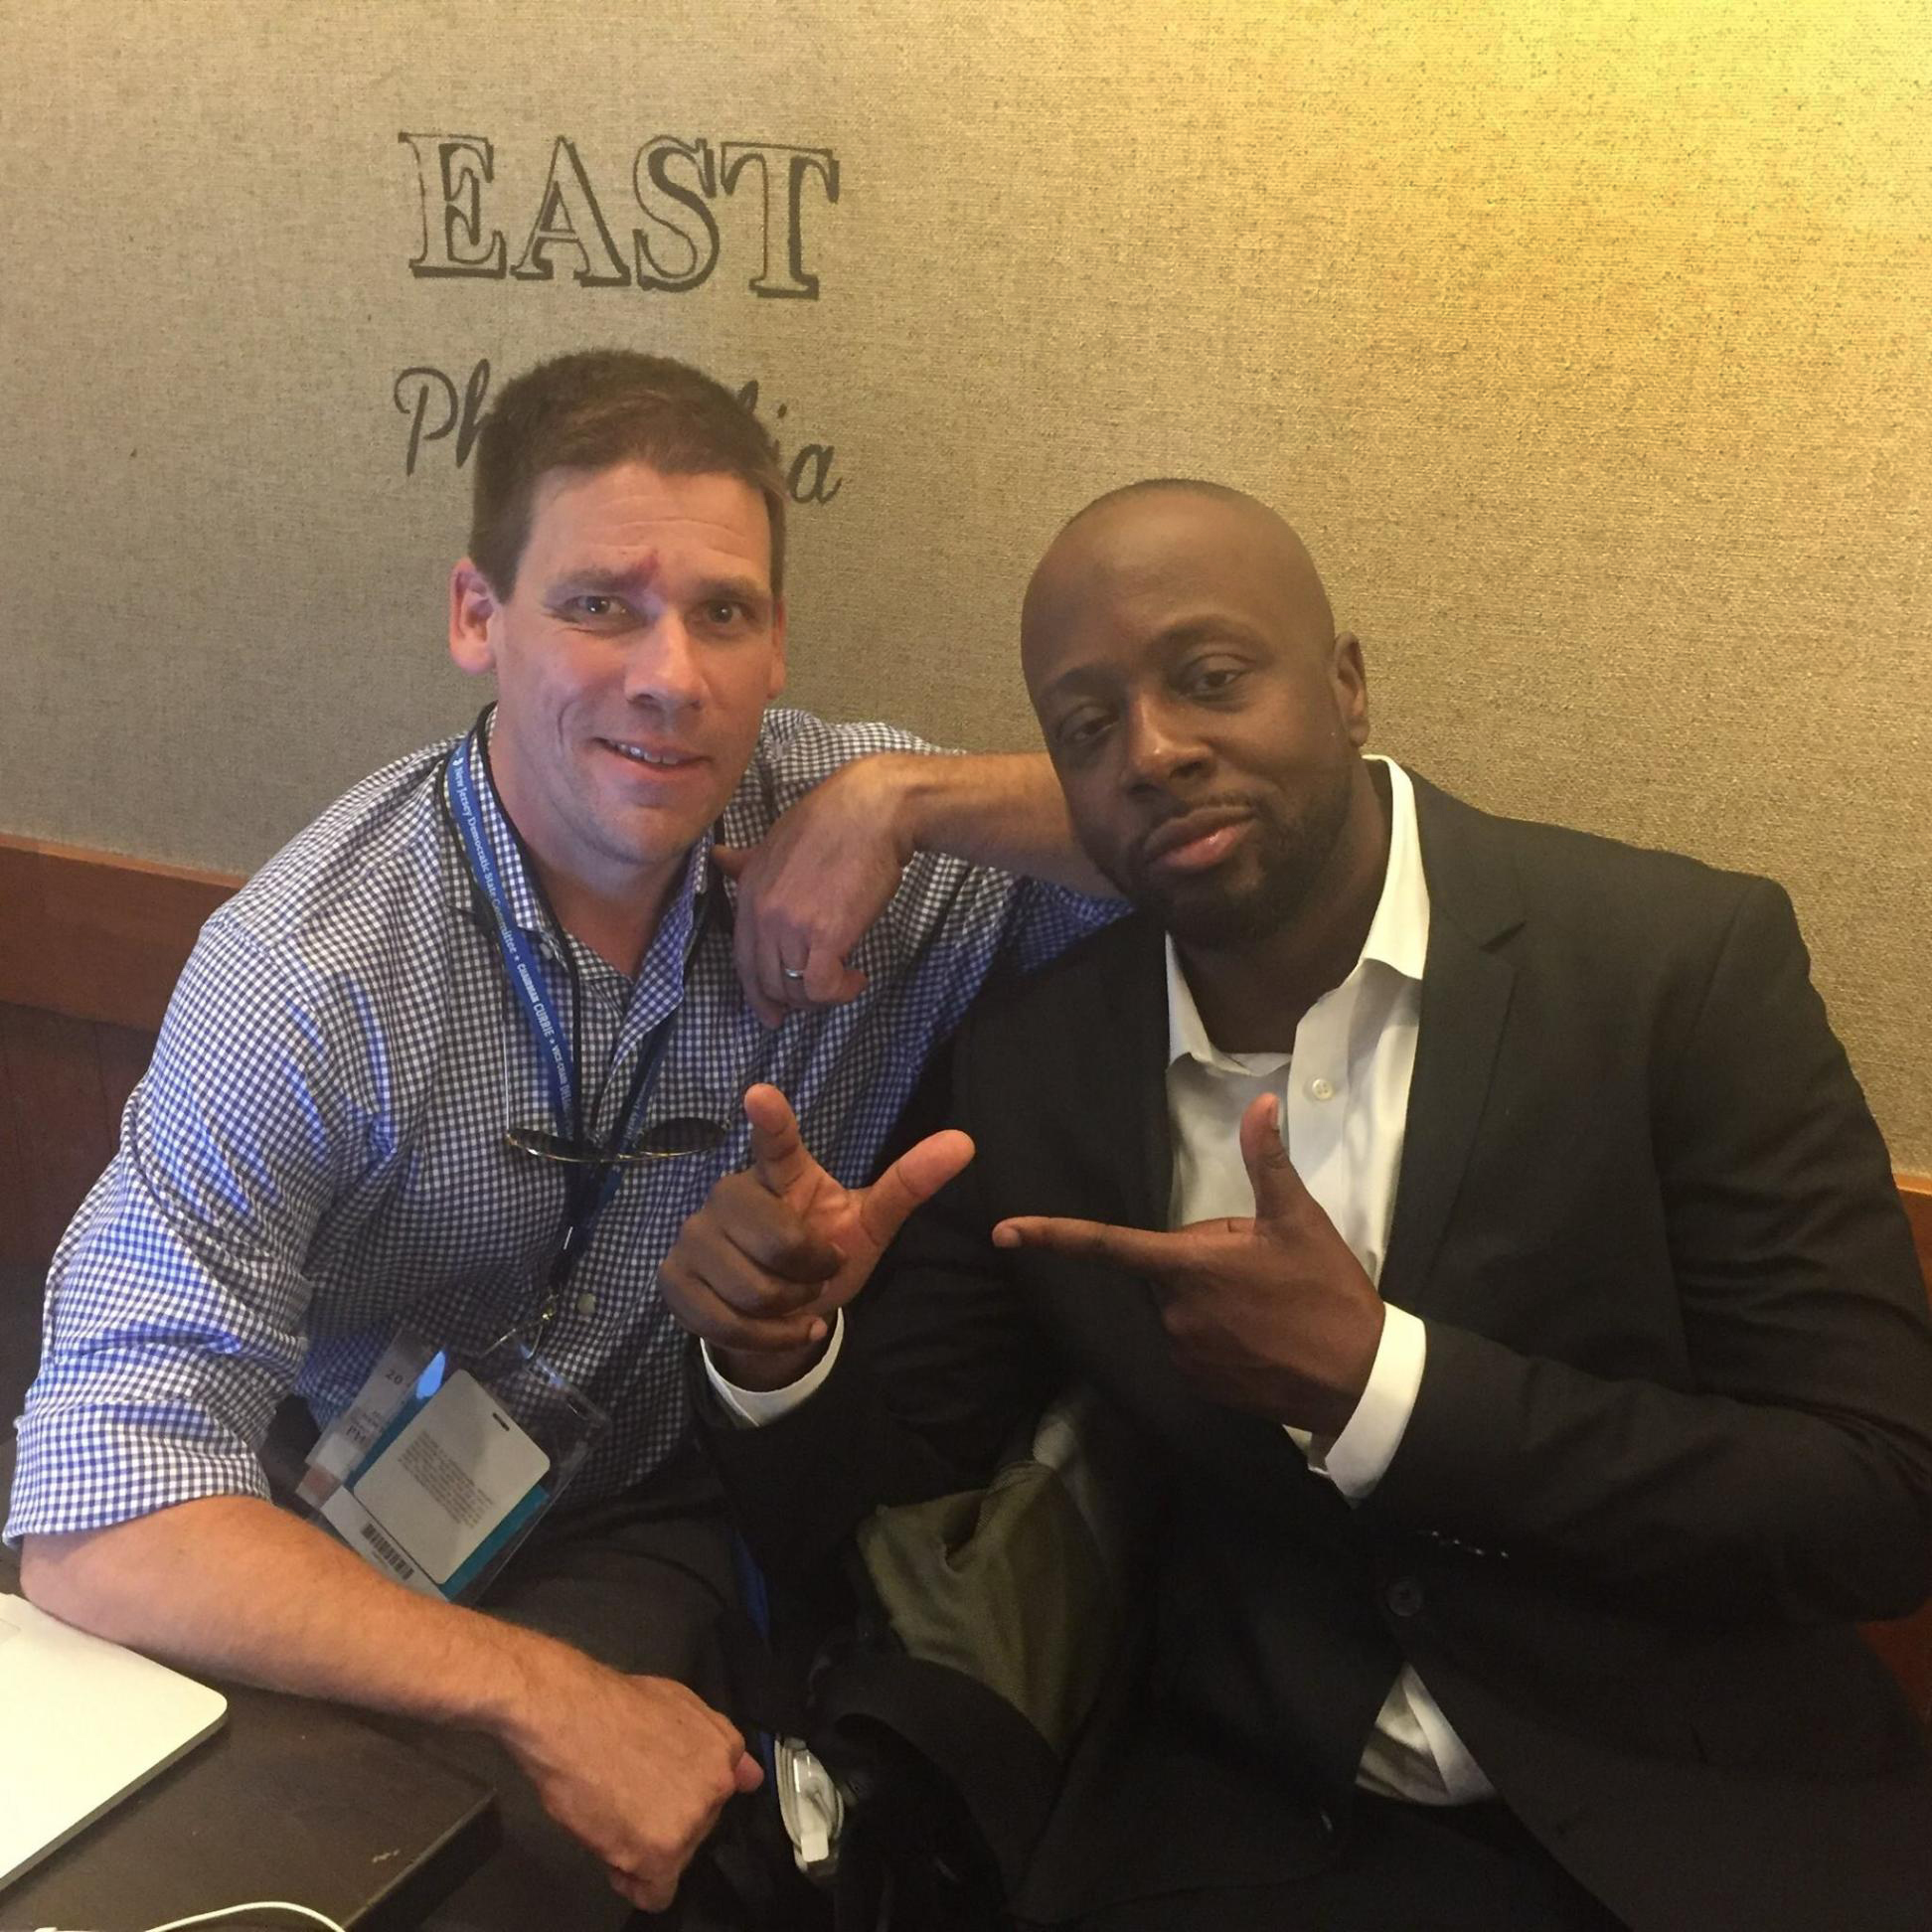 Morning Briefing staffer Bruno Tedeschi gets some wisdom from New Jersey Hall of Famer Wyclef Jean at the Democratic National Convention in July.